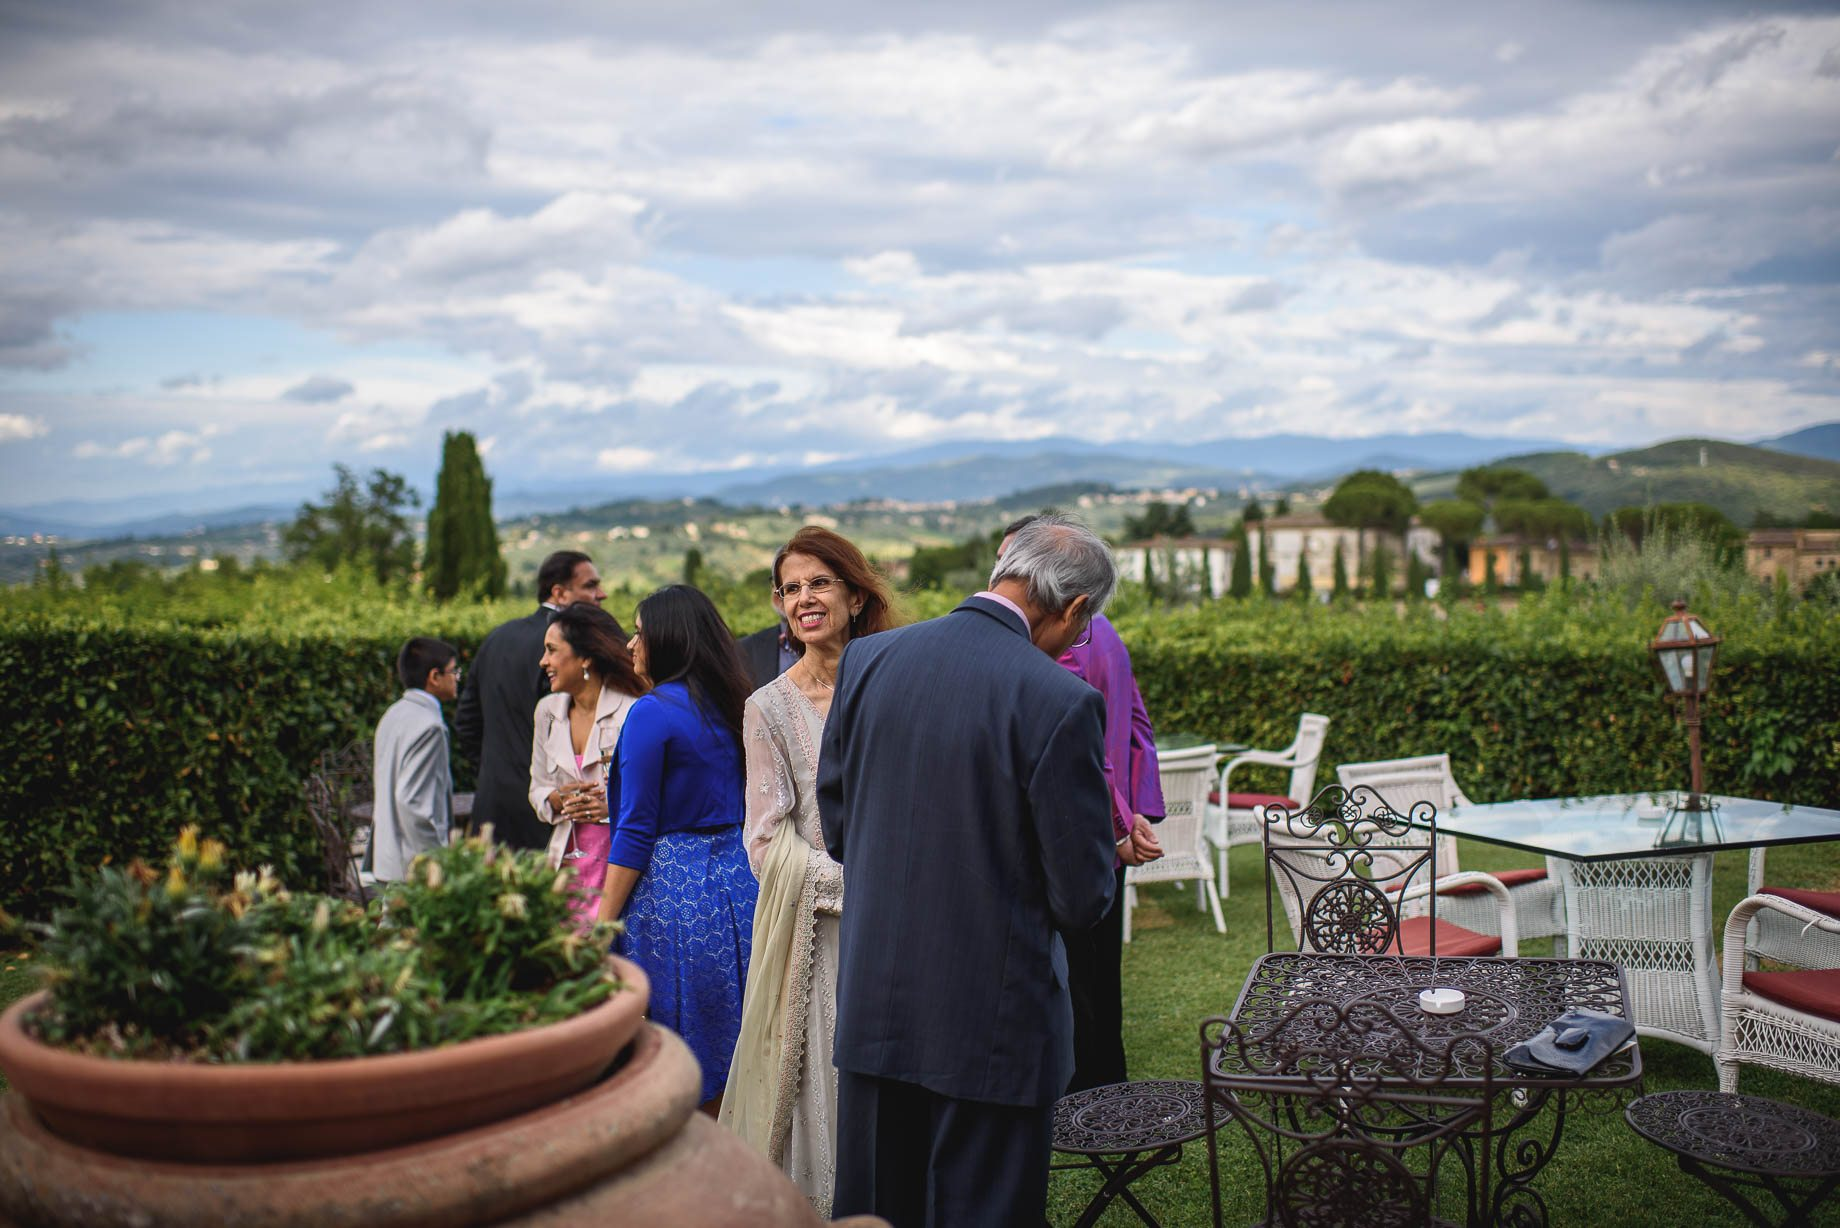 Tuscany wedding photography - Roisin and Moubin - Guy Collier Photography (130 of 251)